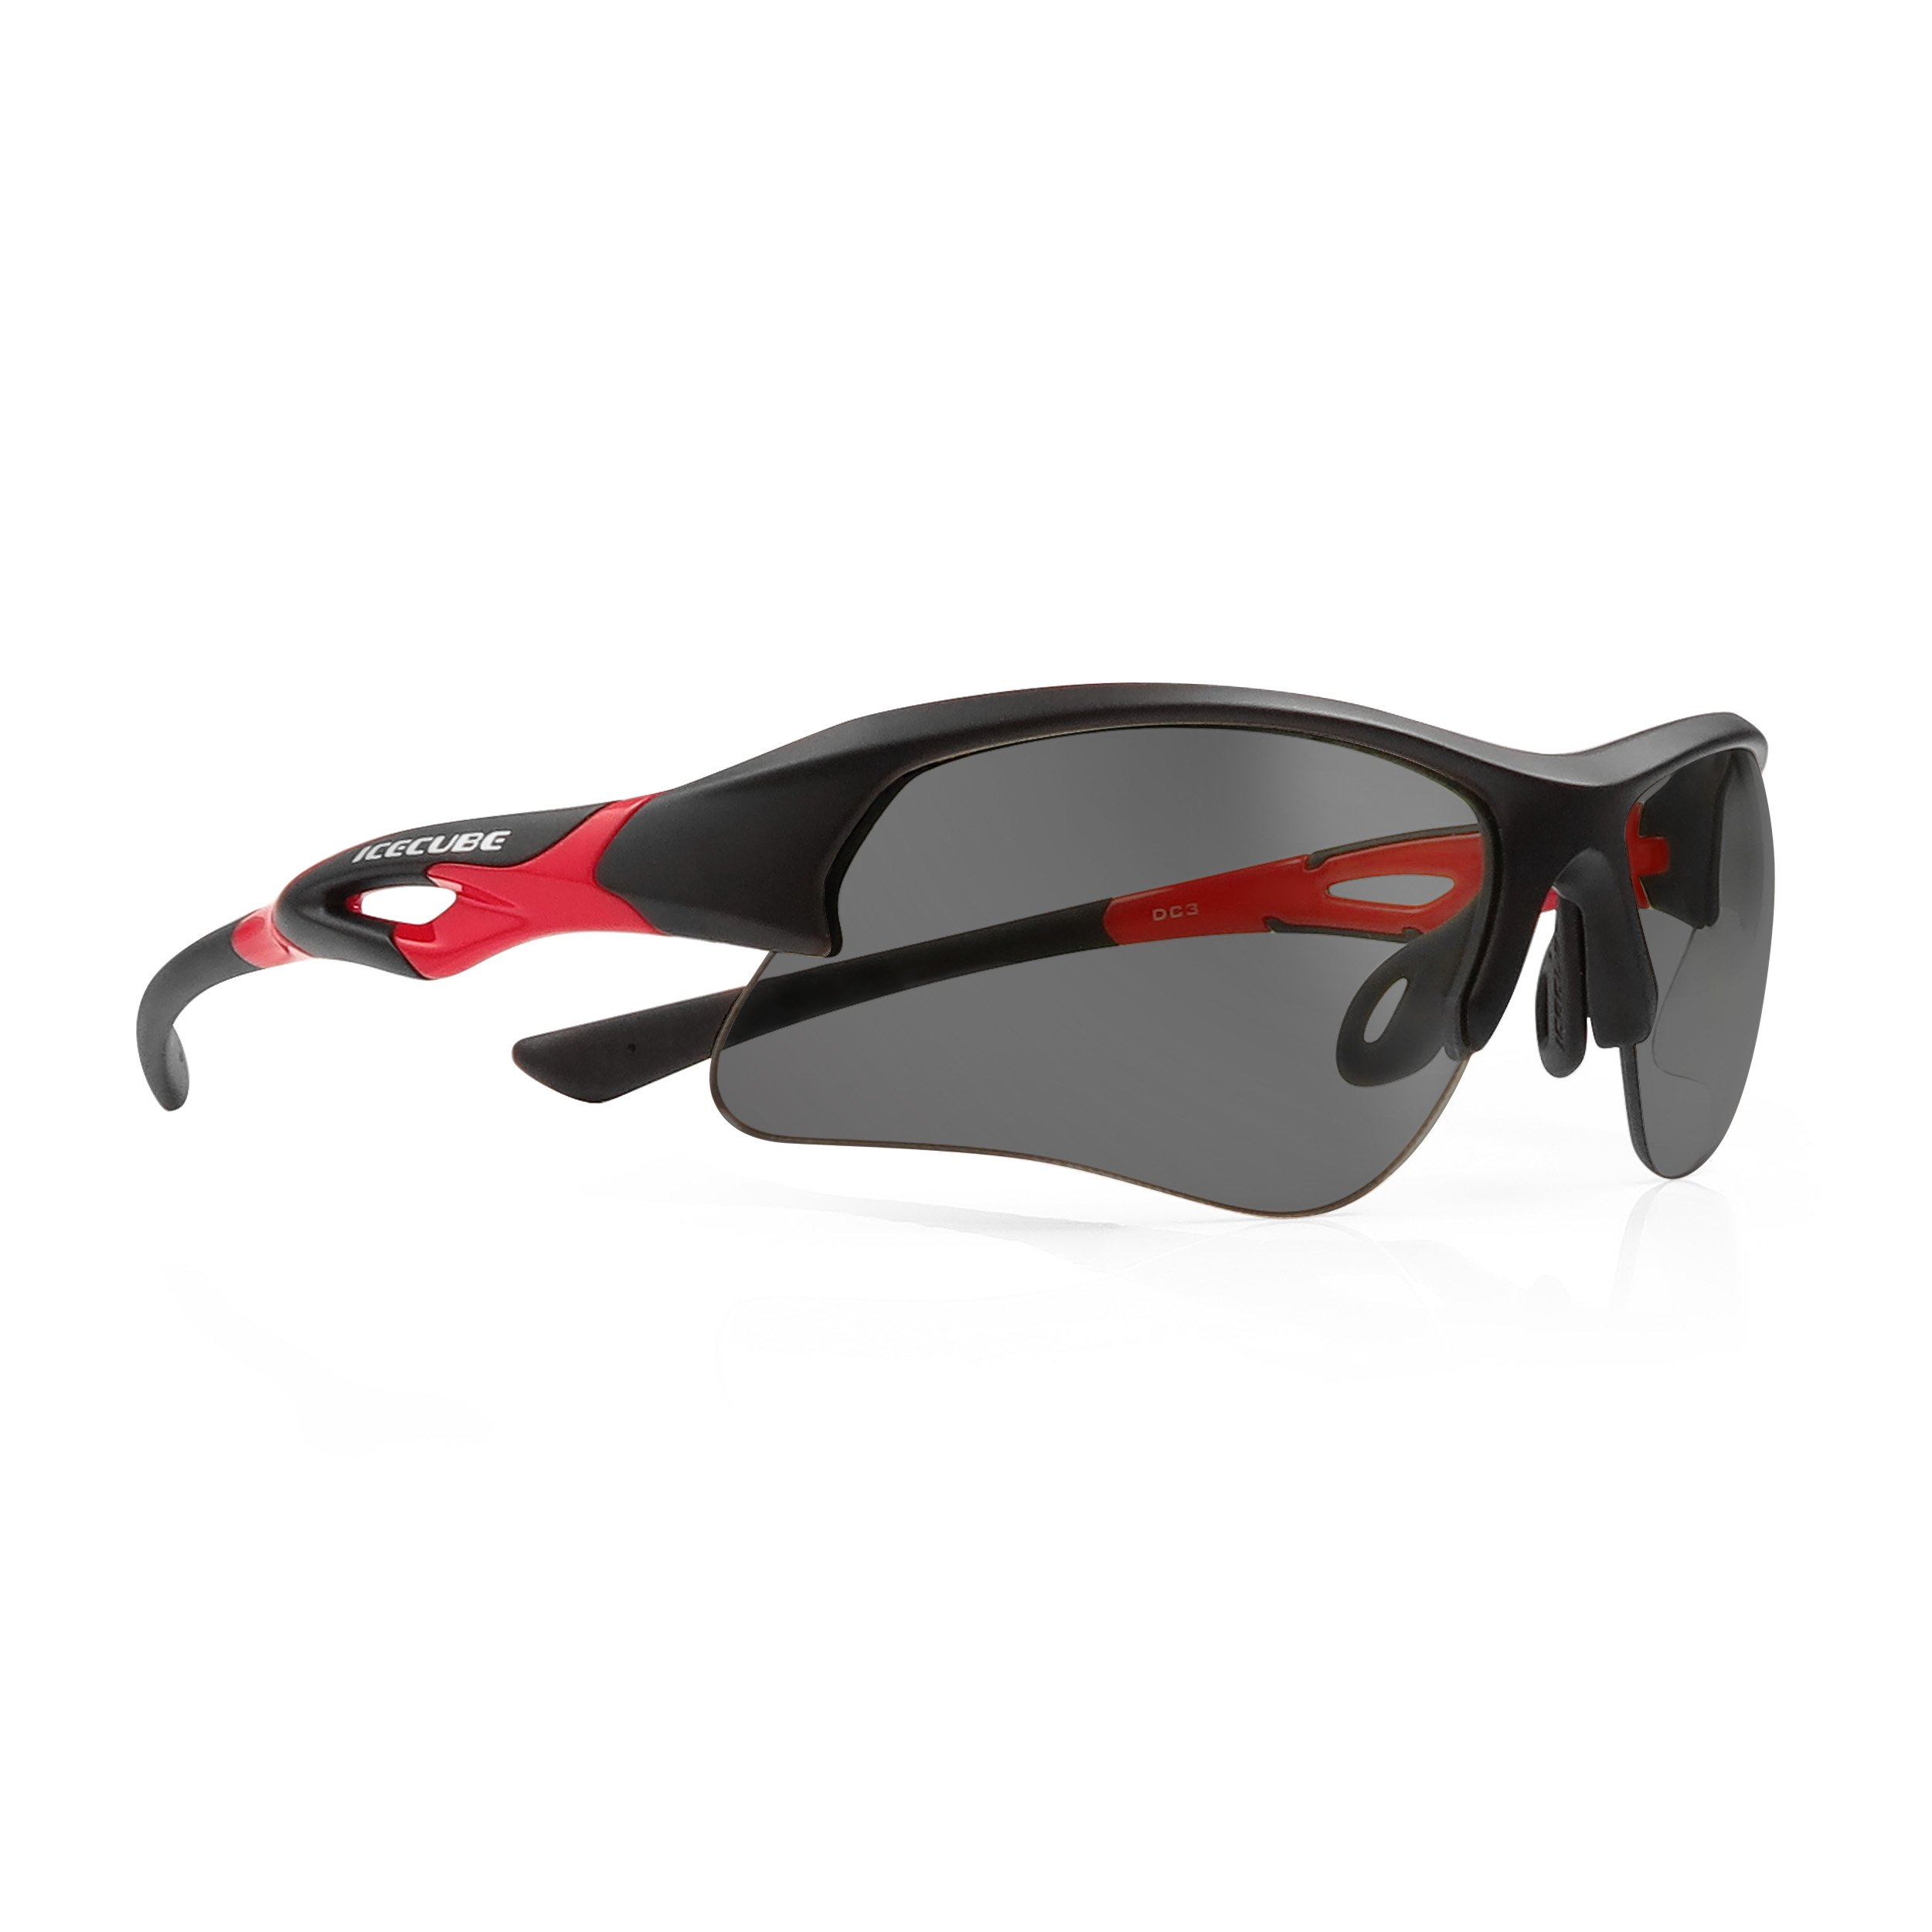 ICECUBE Asian Fit Photochromic Polarized Sports Sunglasses | Men or Women| UV Protection | TR90 Ultra Light | Suitable for Running, Driving, Beach, Fishing - TRIDENT (BLK / RED, Grey Polarized)